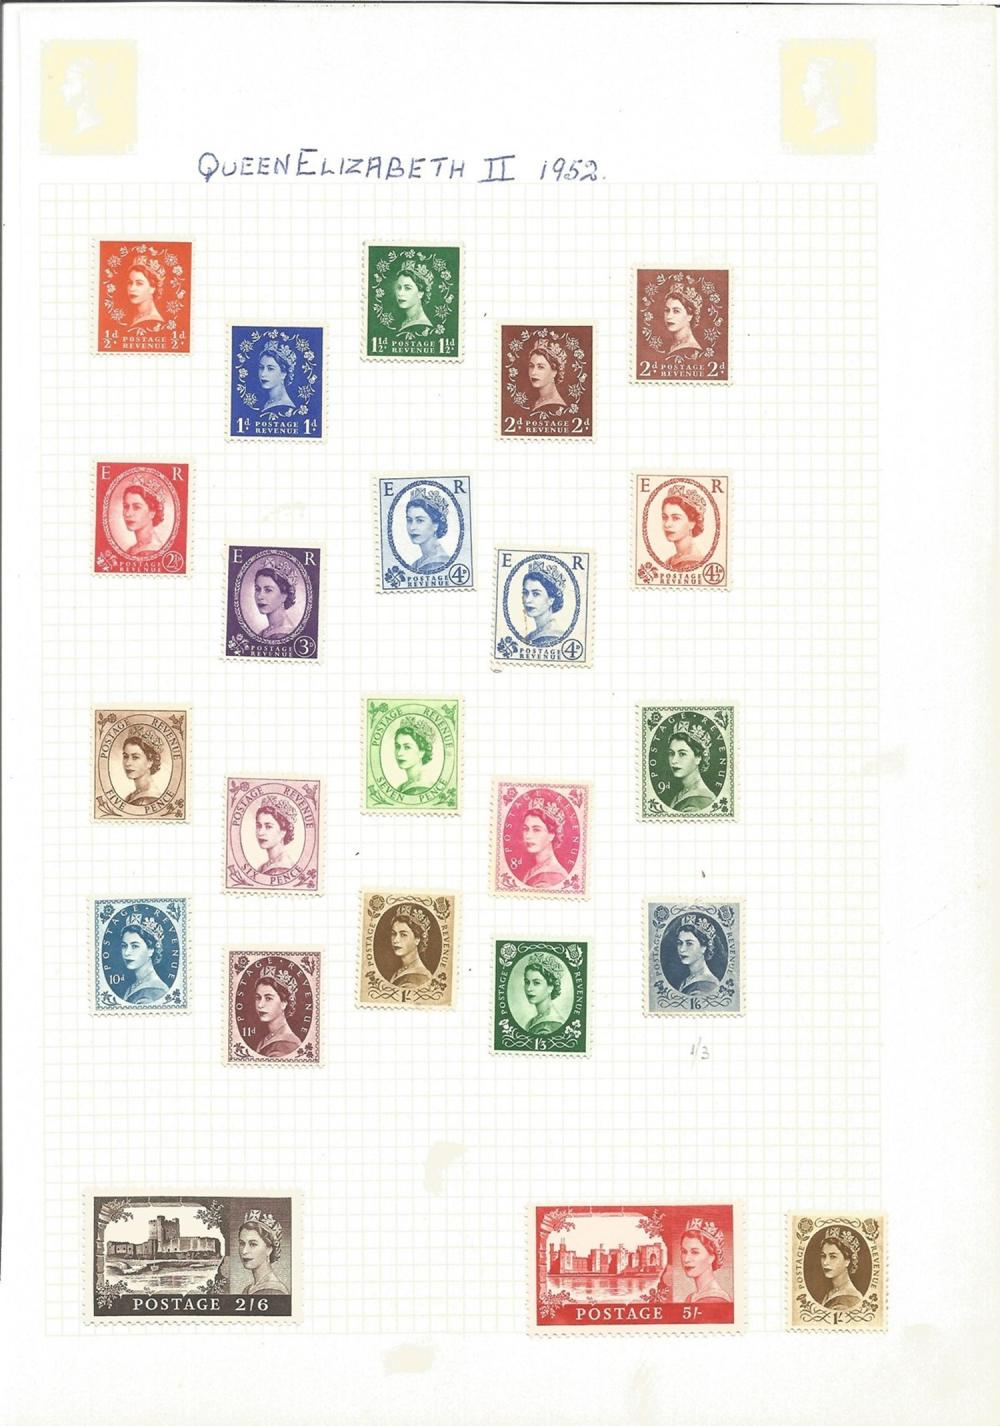 Great Britain stamps including Queen Elizabeth II 1952, loose stamps on sheets, approx. 50. Good